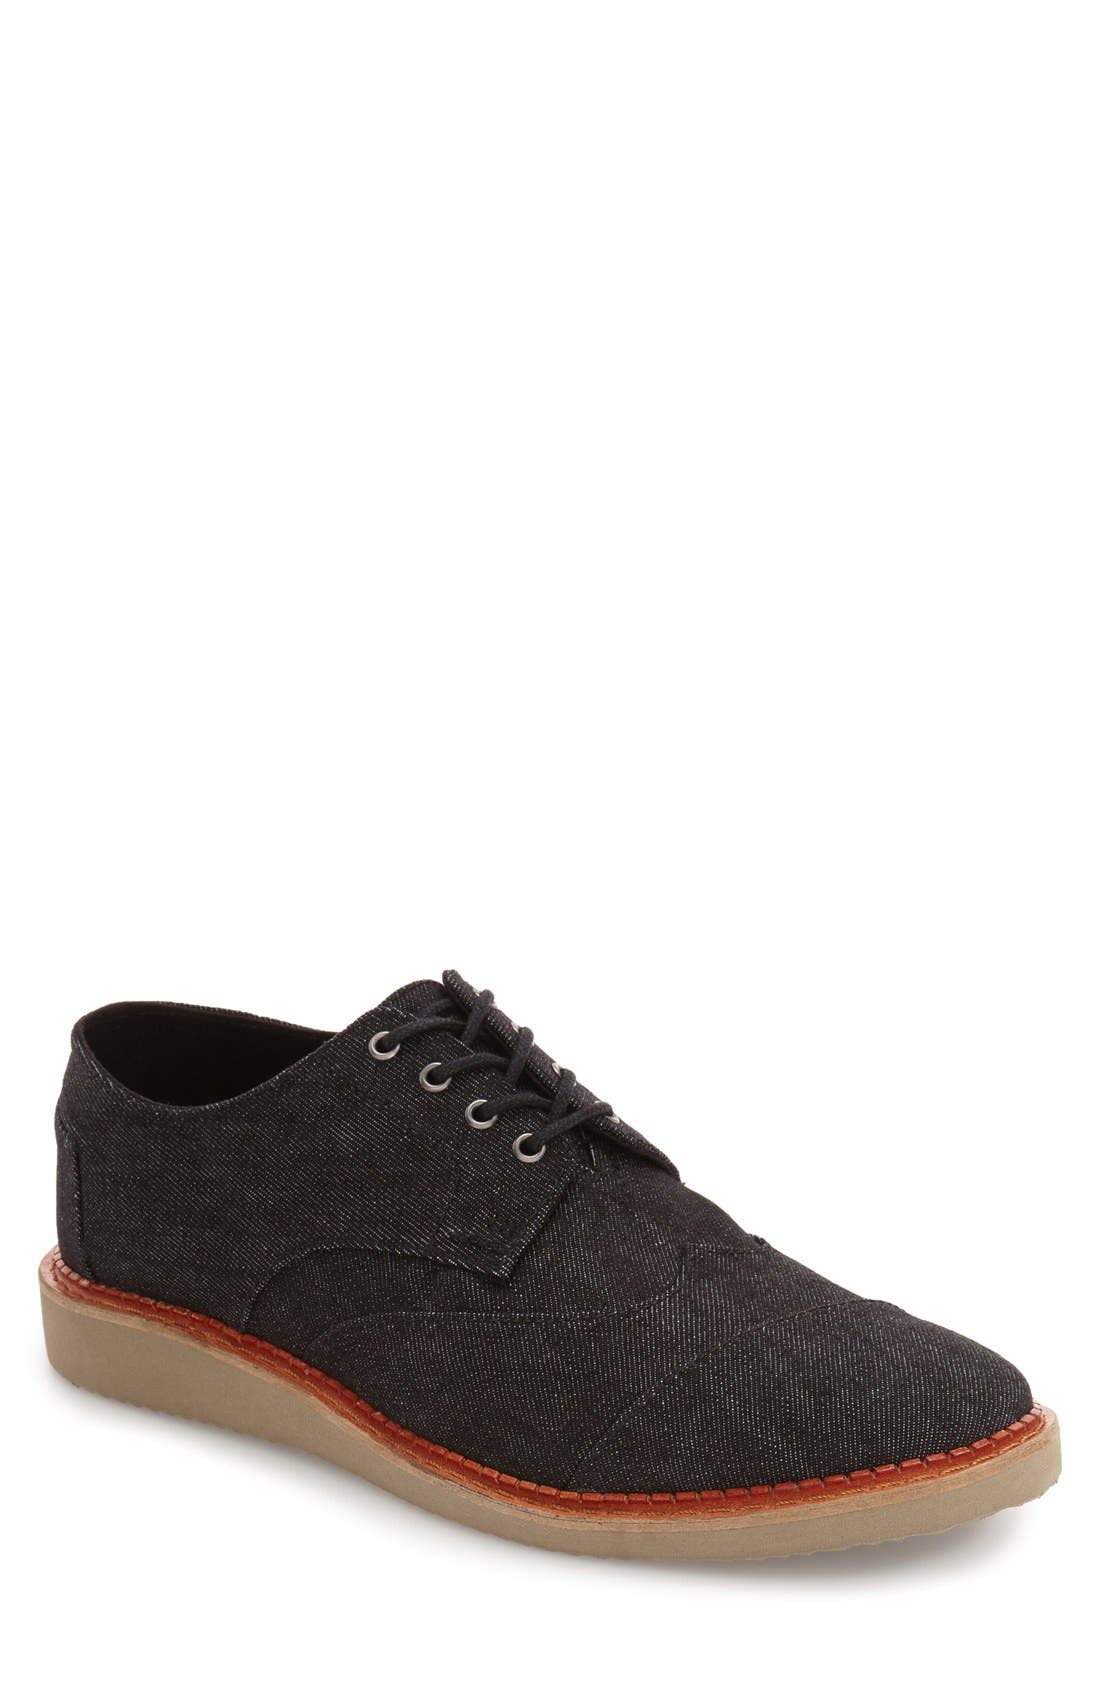 'Classic Brogue' Cotton Twill Derby,                             Alternate thumbnail 18, color,